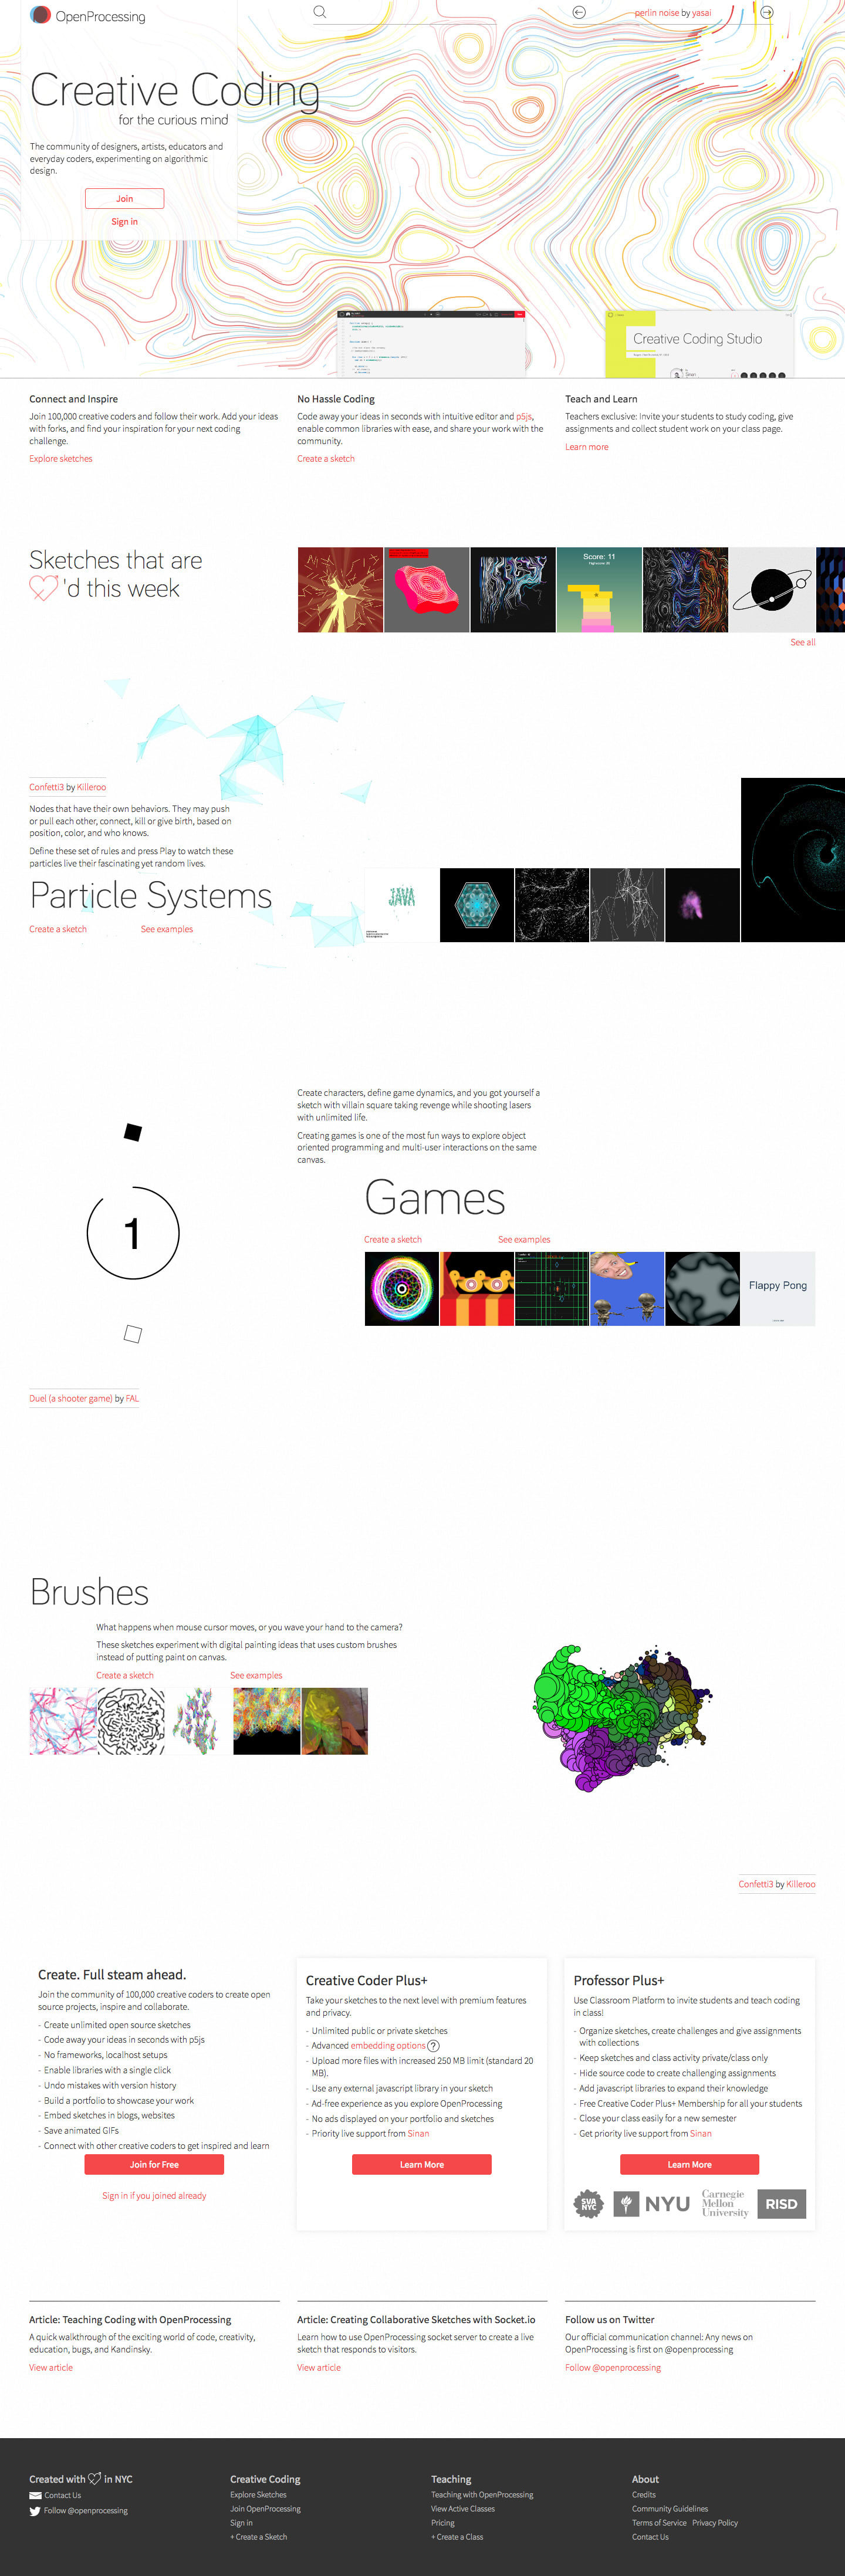 OpenProcessing - A Social Creative Coding Website for Everyday Coders